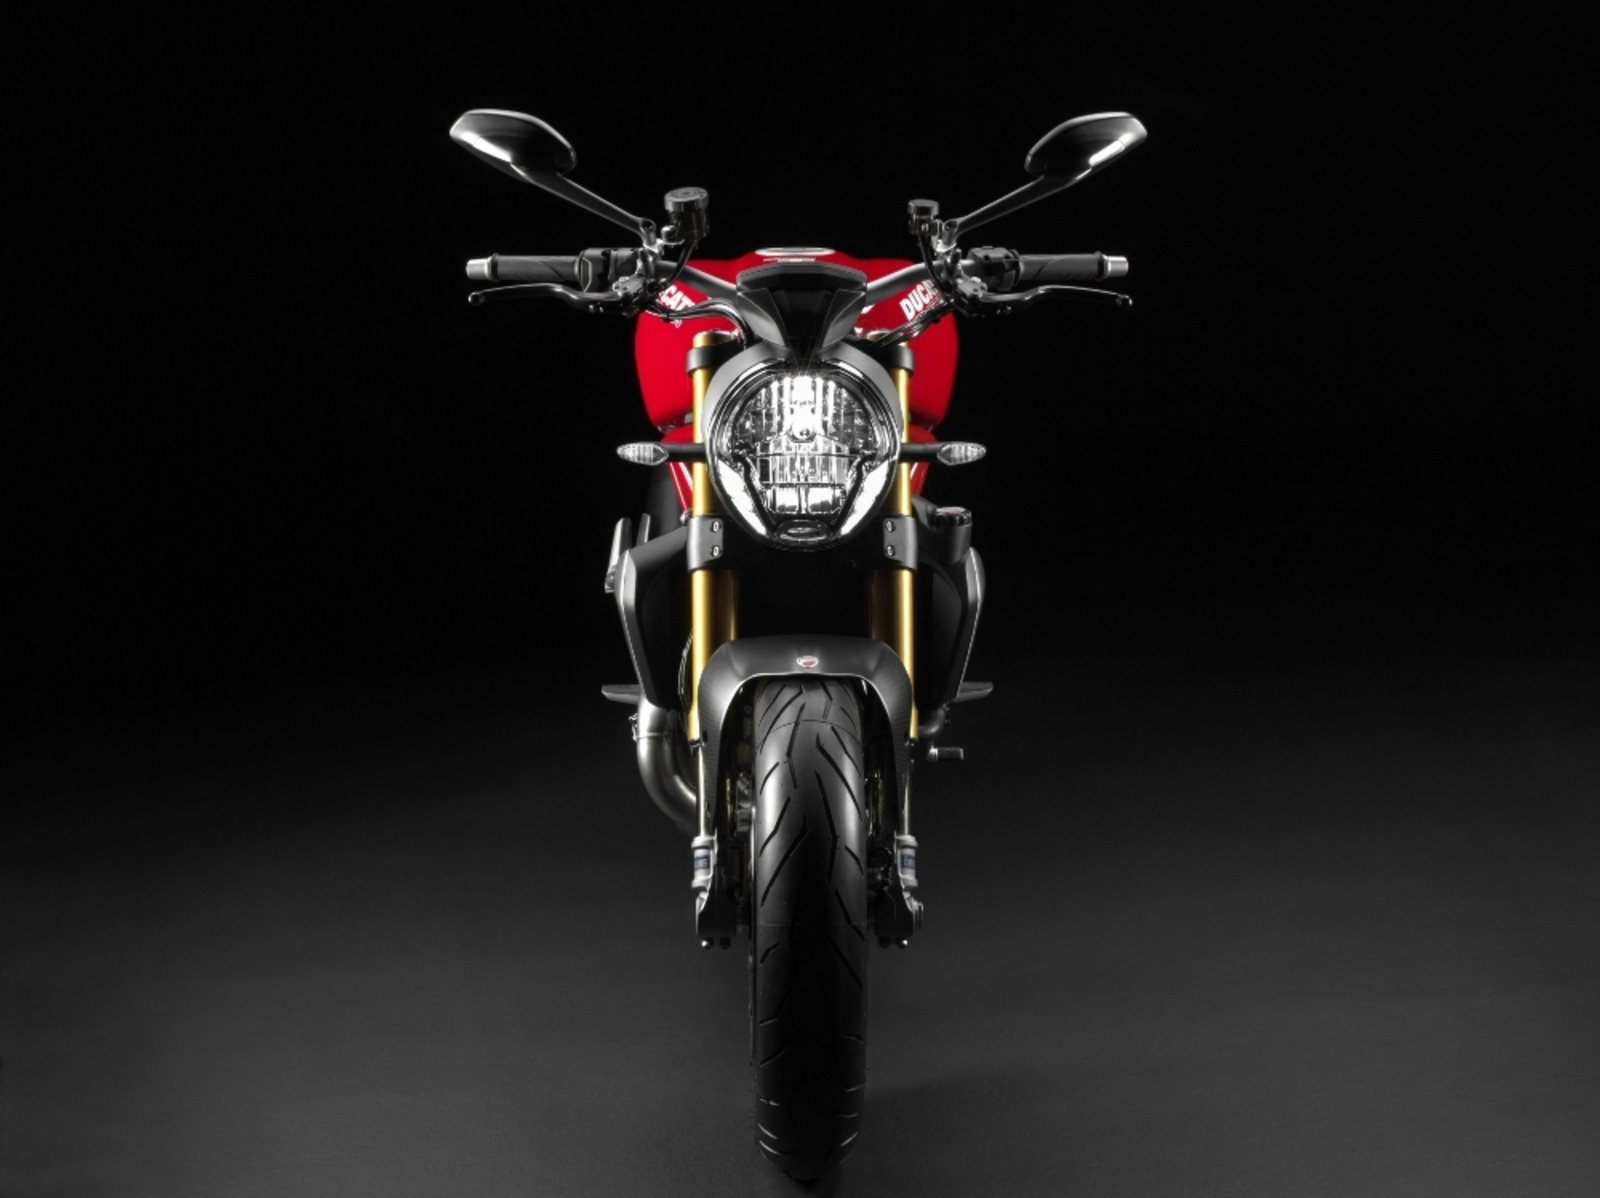 Ducati Monster News And Reviews Top Speed Two Brothers 696 Black Series Dual Slip On Exhaust Systems 2014 1200